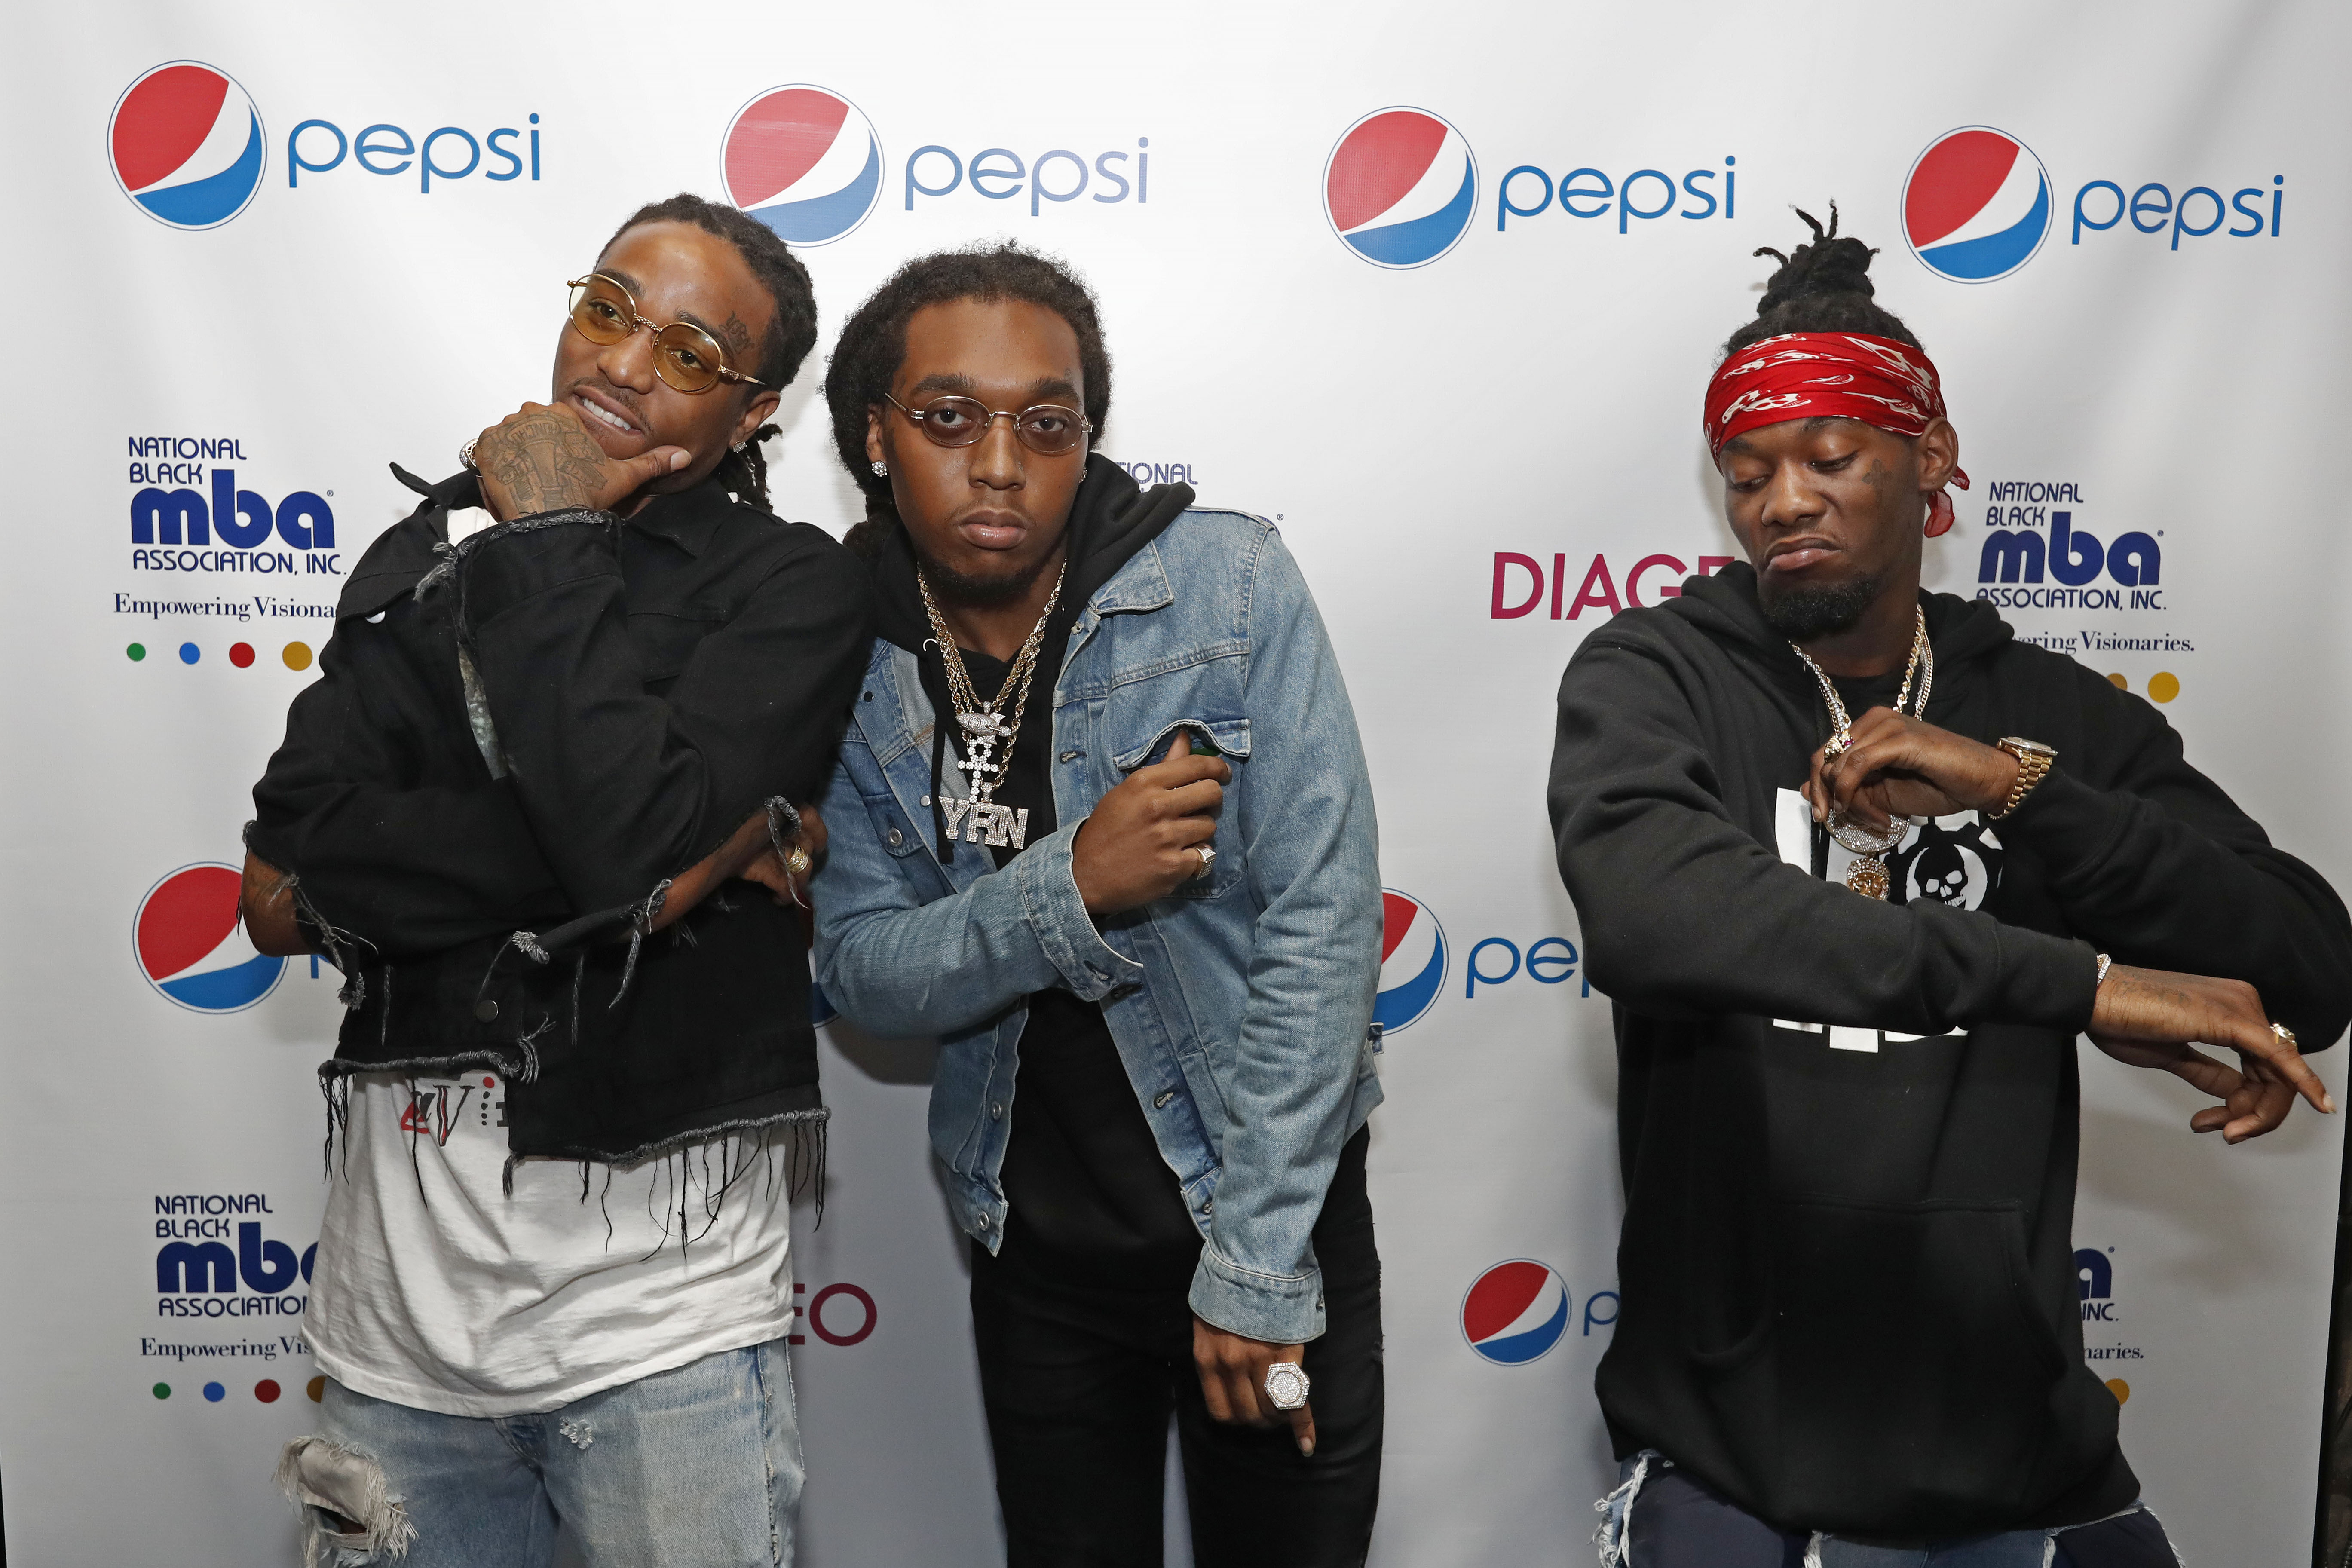 Migos attend the 2nd Annual Pepsi MBA Live at The Metropolitan on October 14, 2016 in New Orleans, Louisiana. (Photo by Tyler Kaufman/Getty)